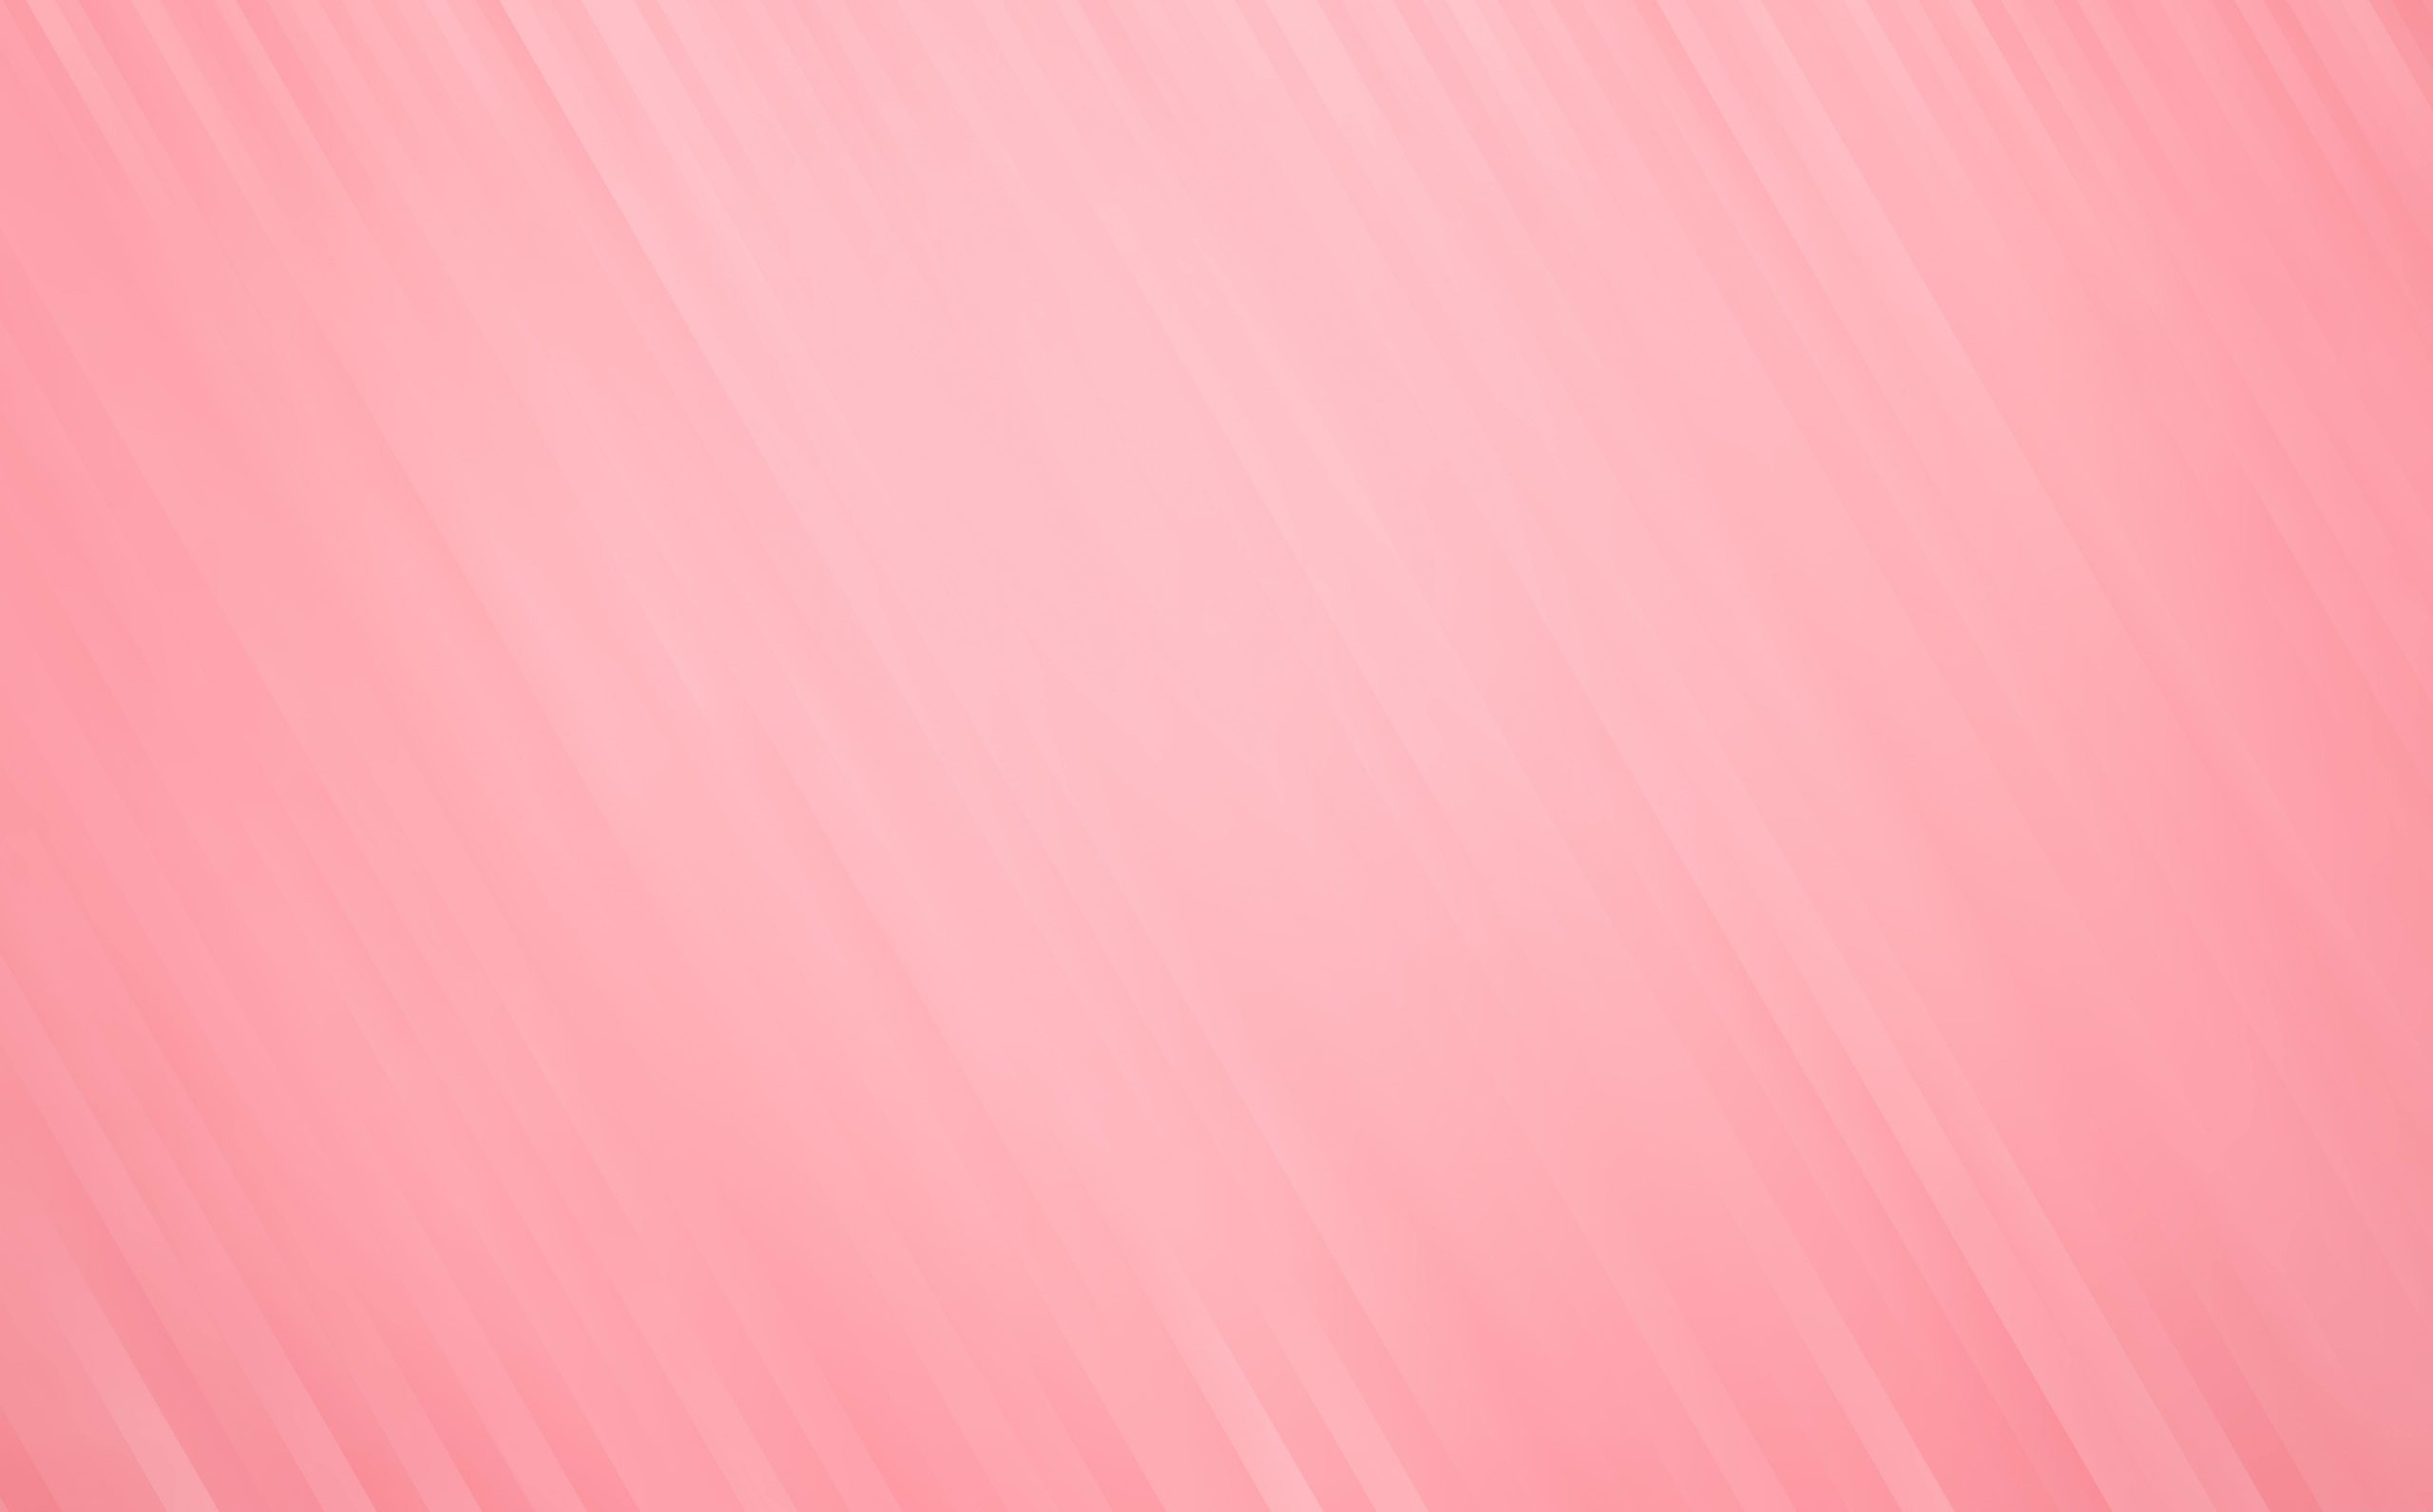 983x966 pink peach wallpaper baby>. Baby Pink wallpaper, Cute, Lines, Abstract, Design